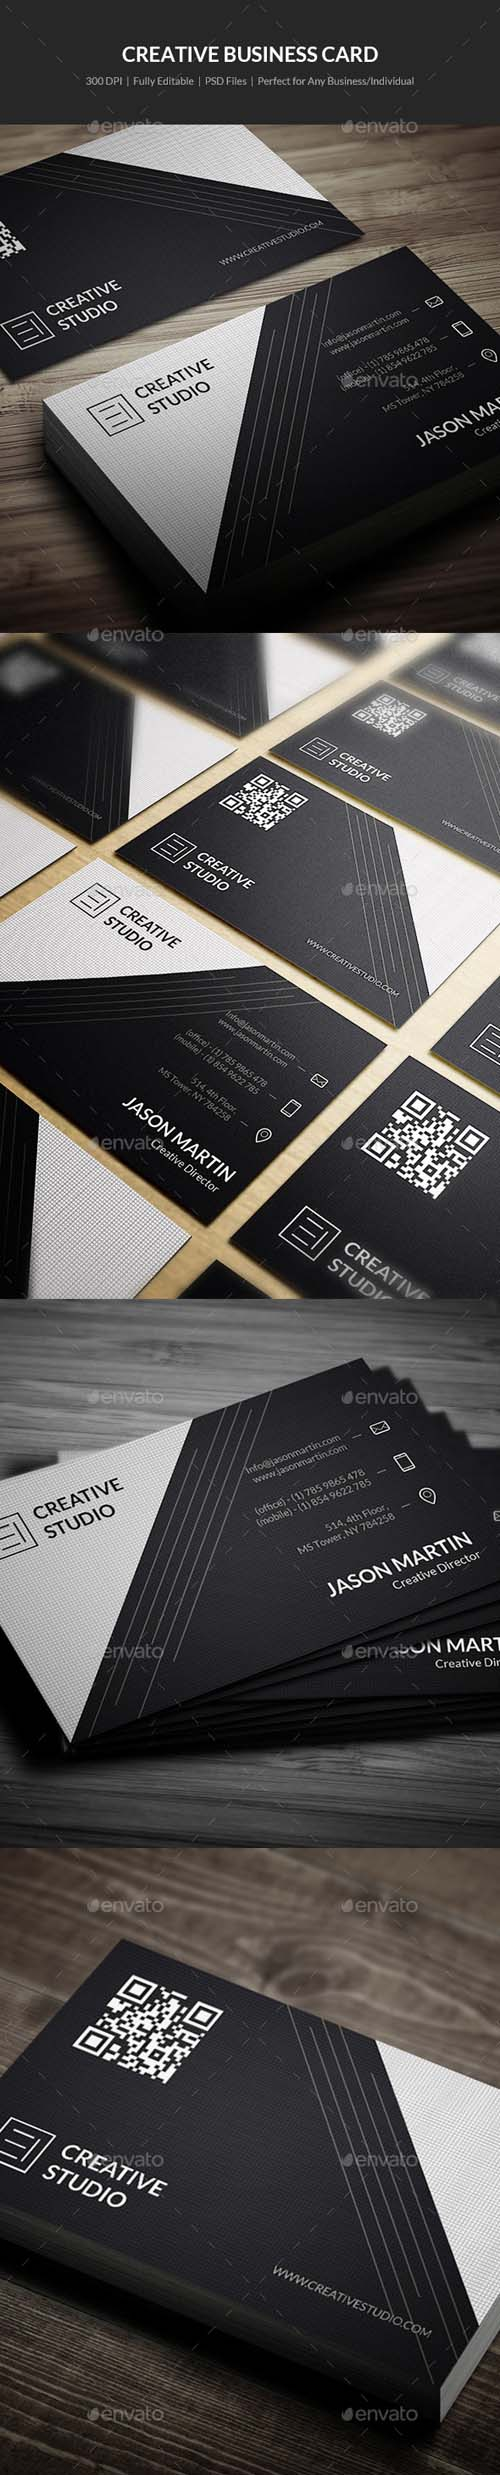 Creative Business Card - 02 19266528